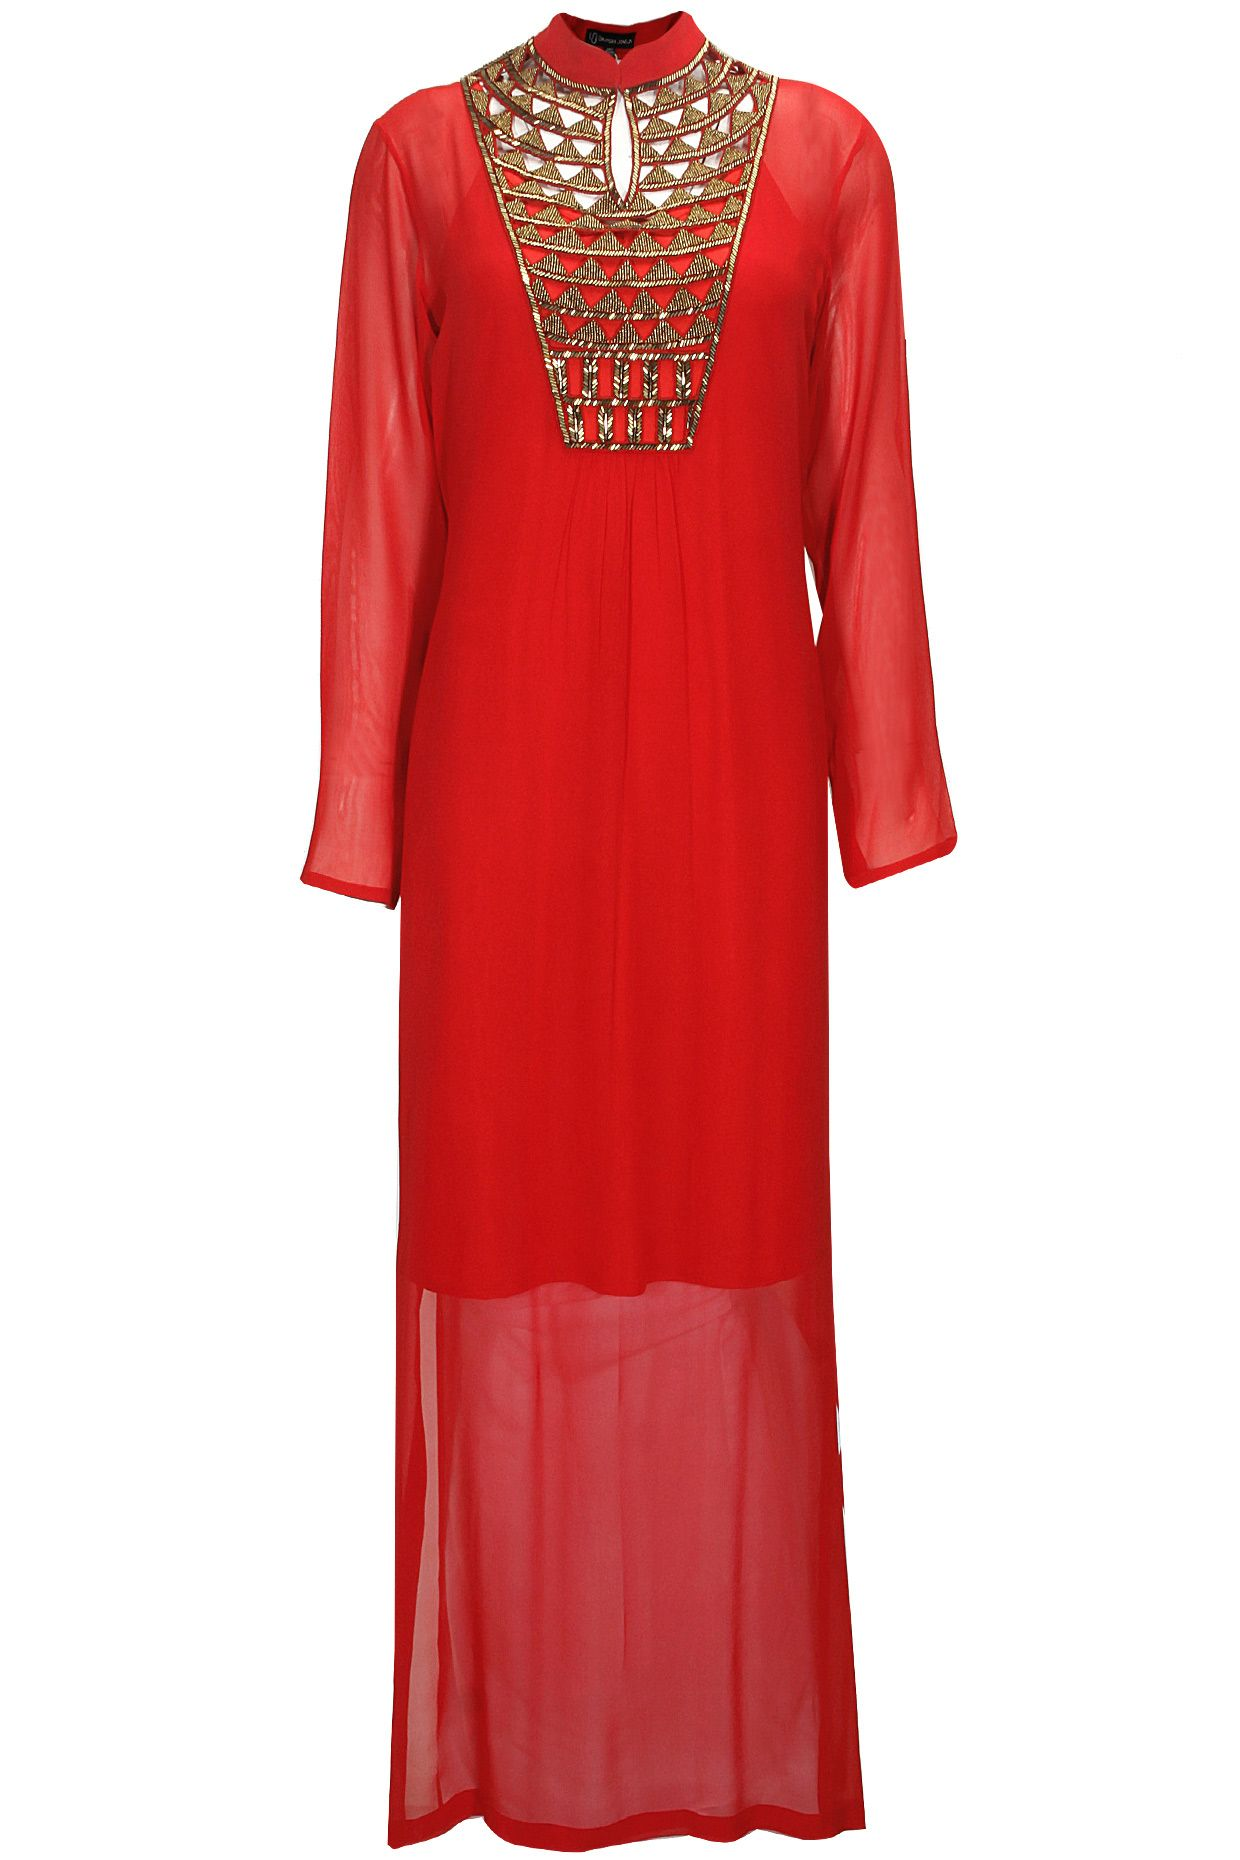 Red embroidered long dress by urvashi joneja shop at